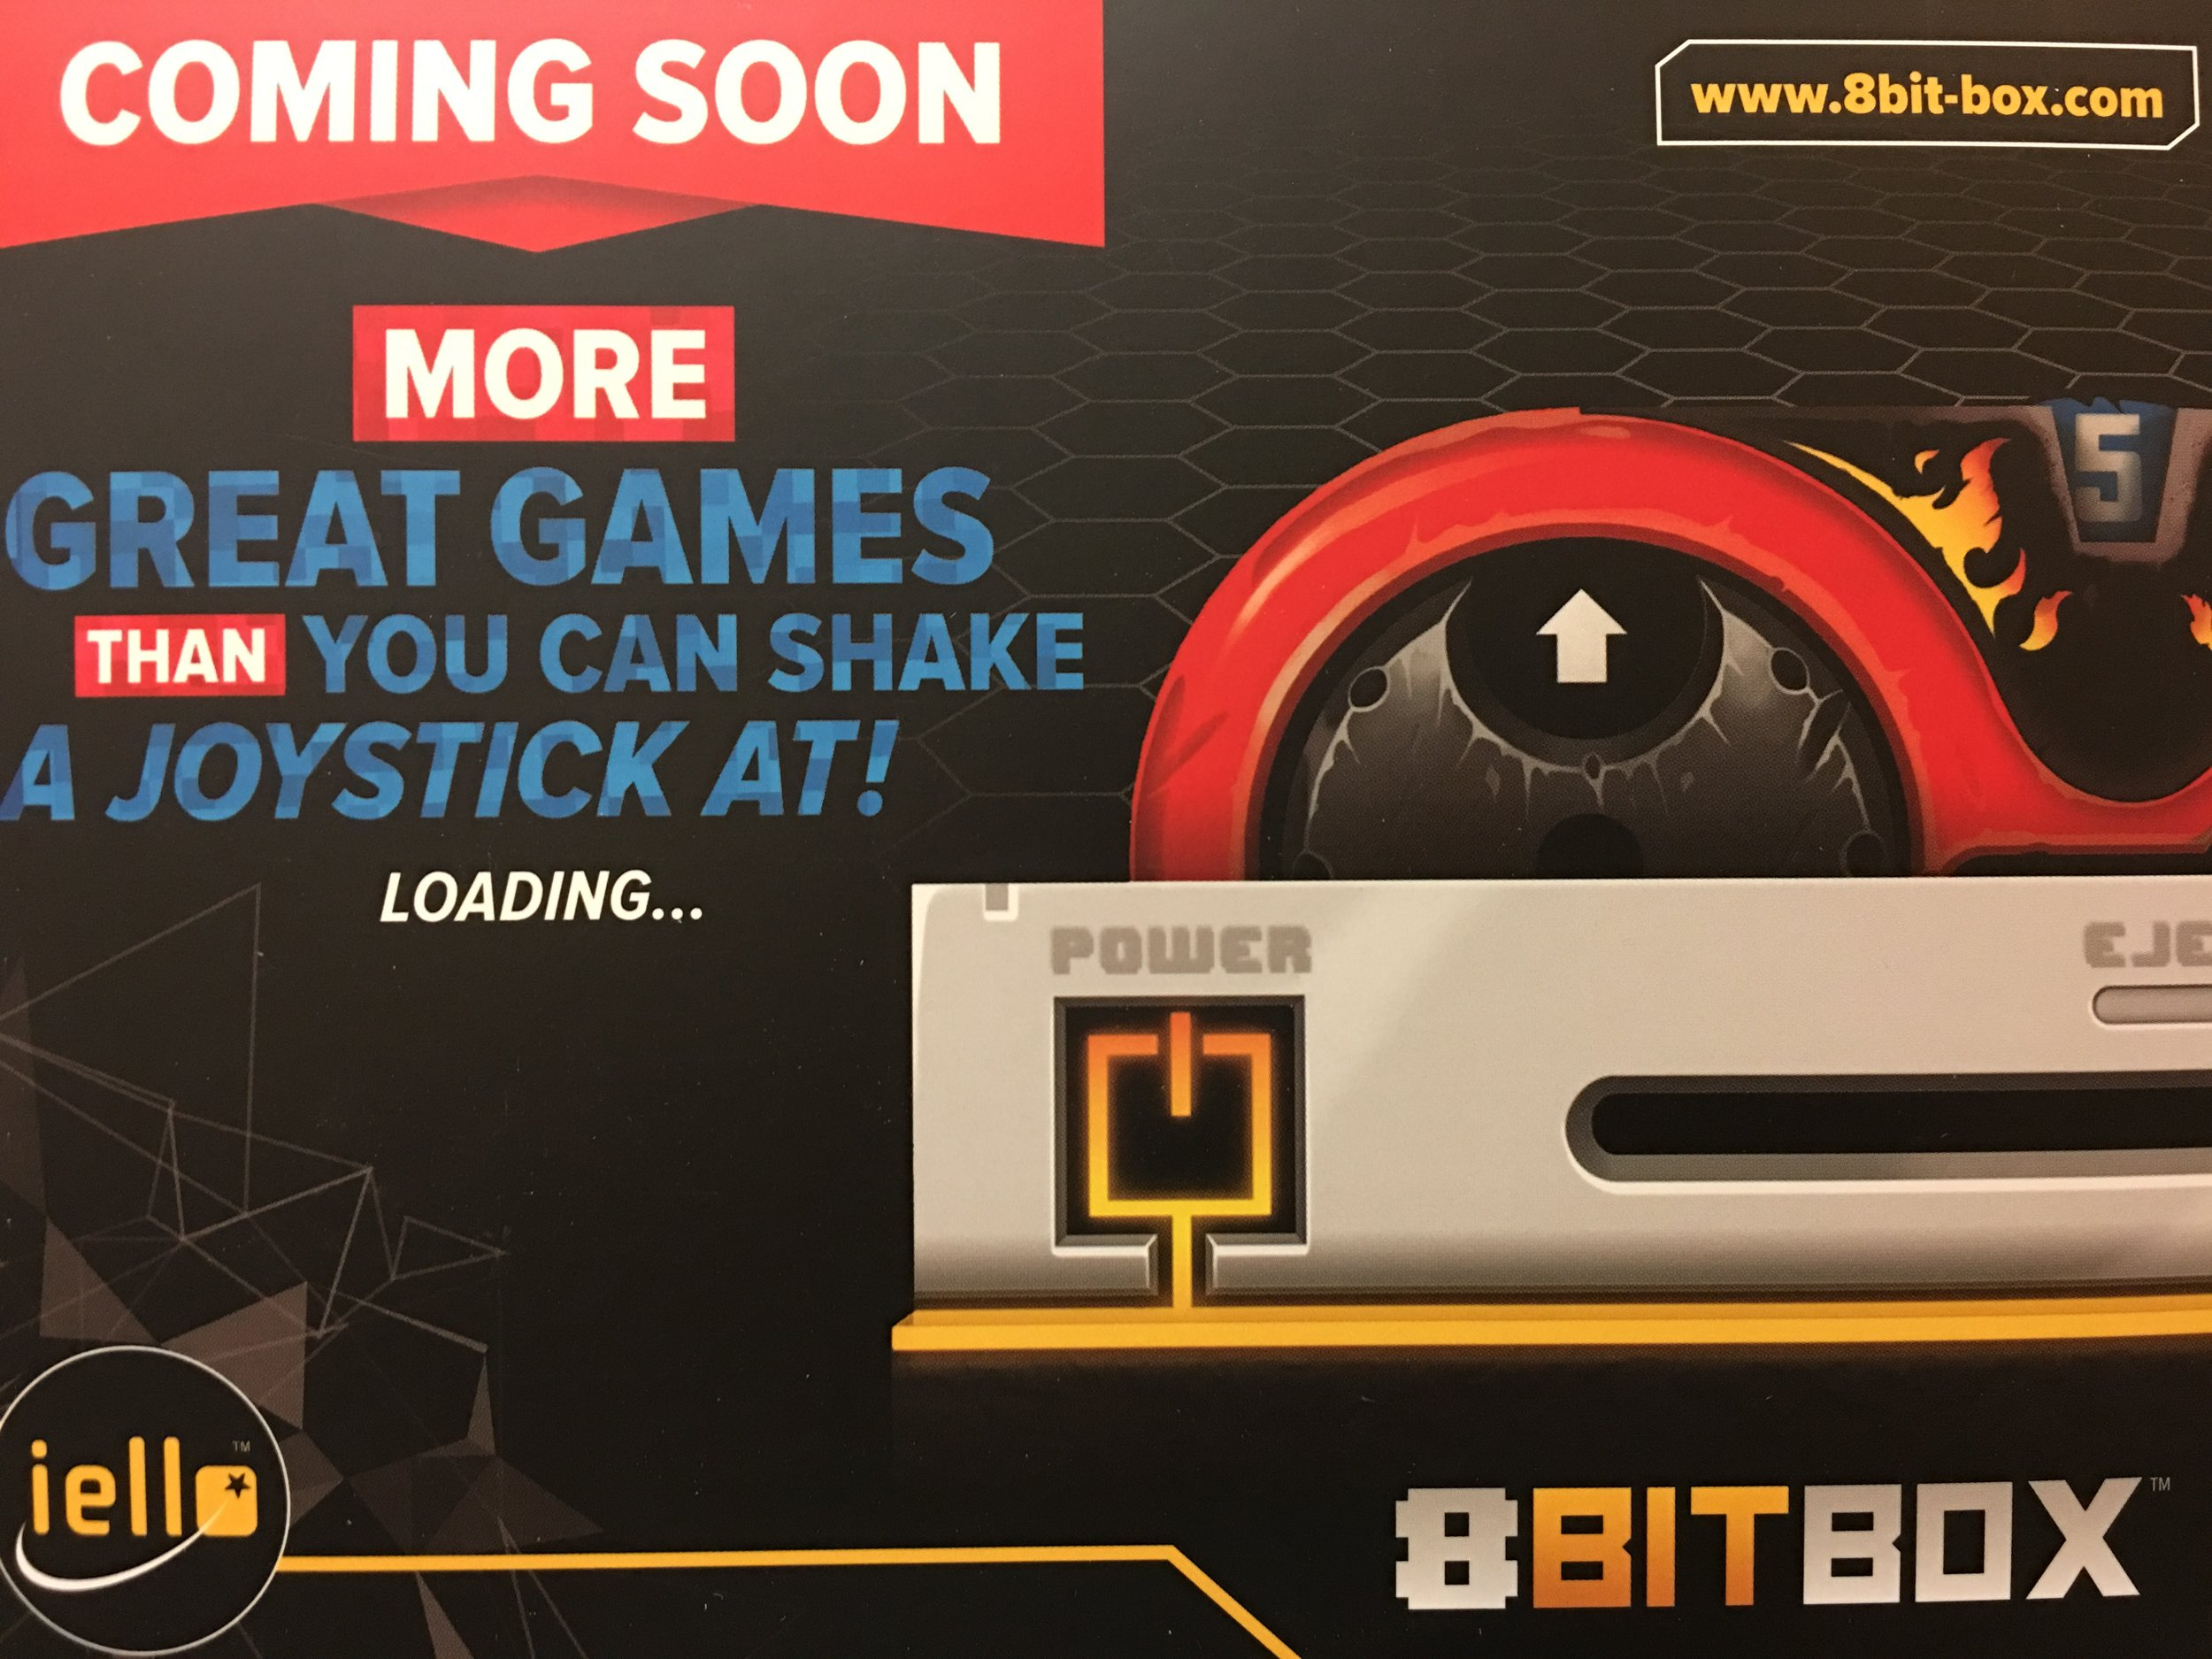 An empty box promoting upcoming games. Reminds me of the old FuncoLand days!